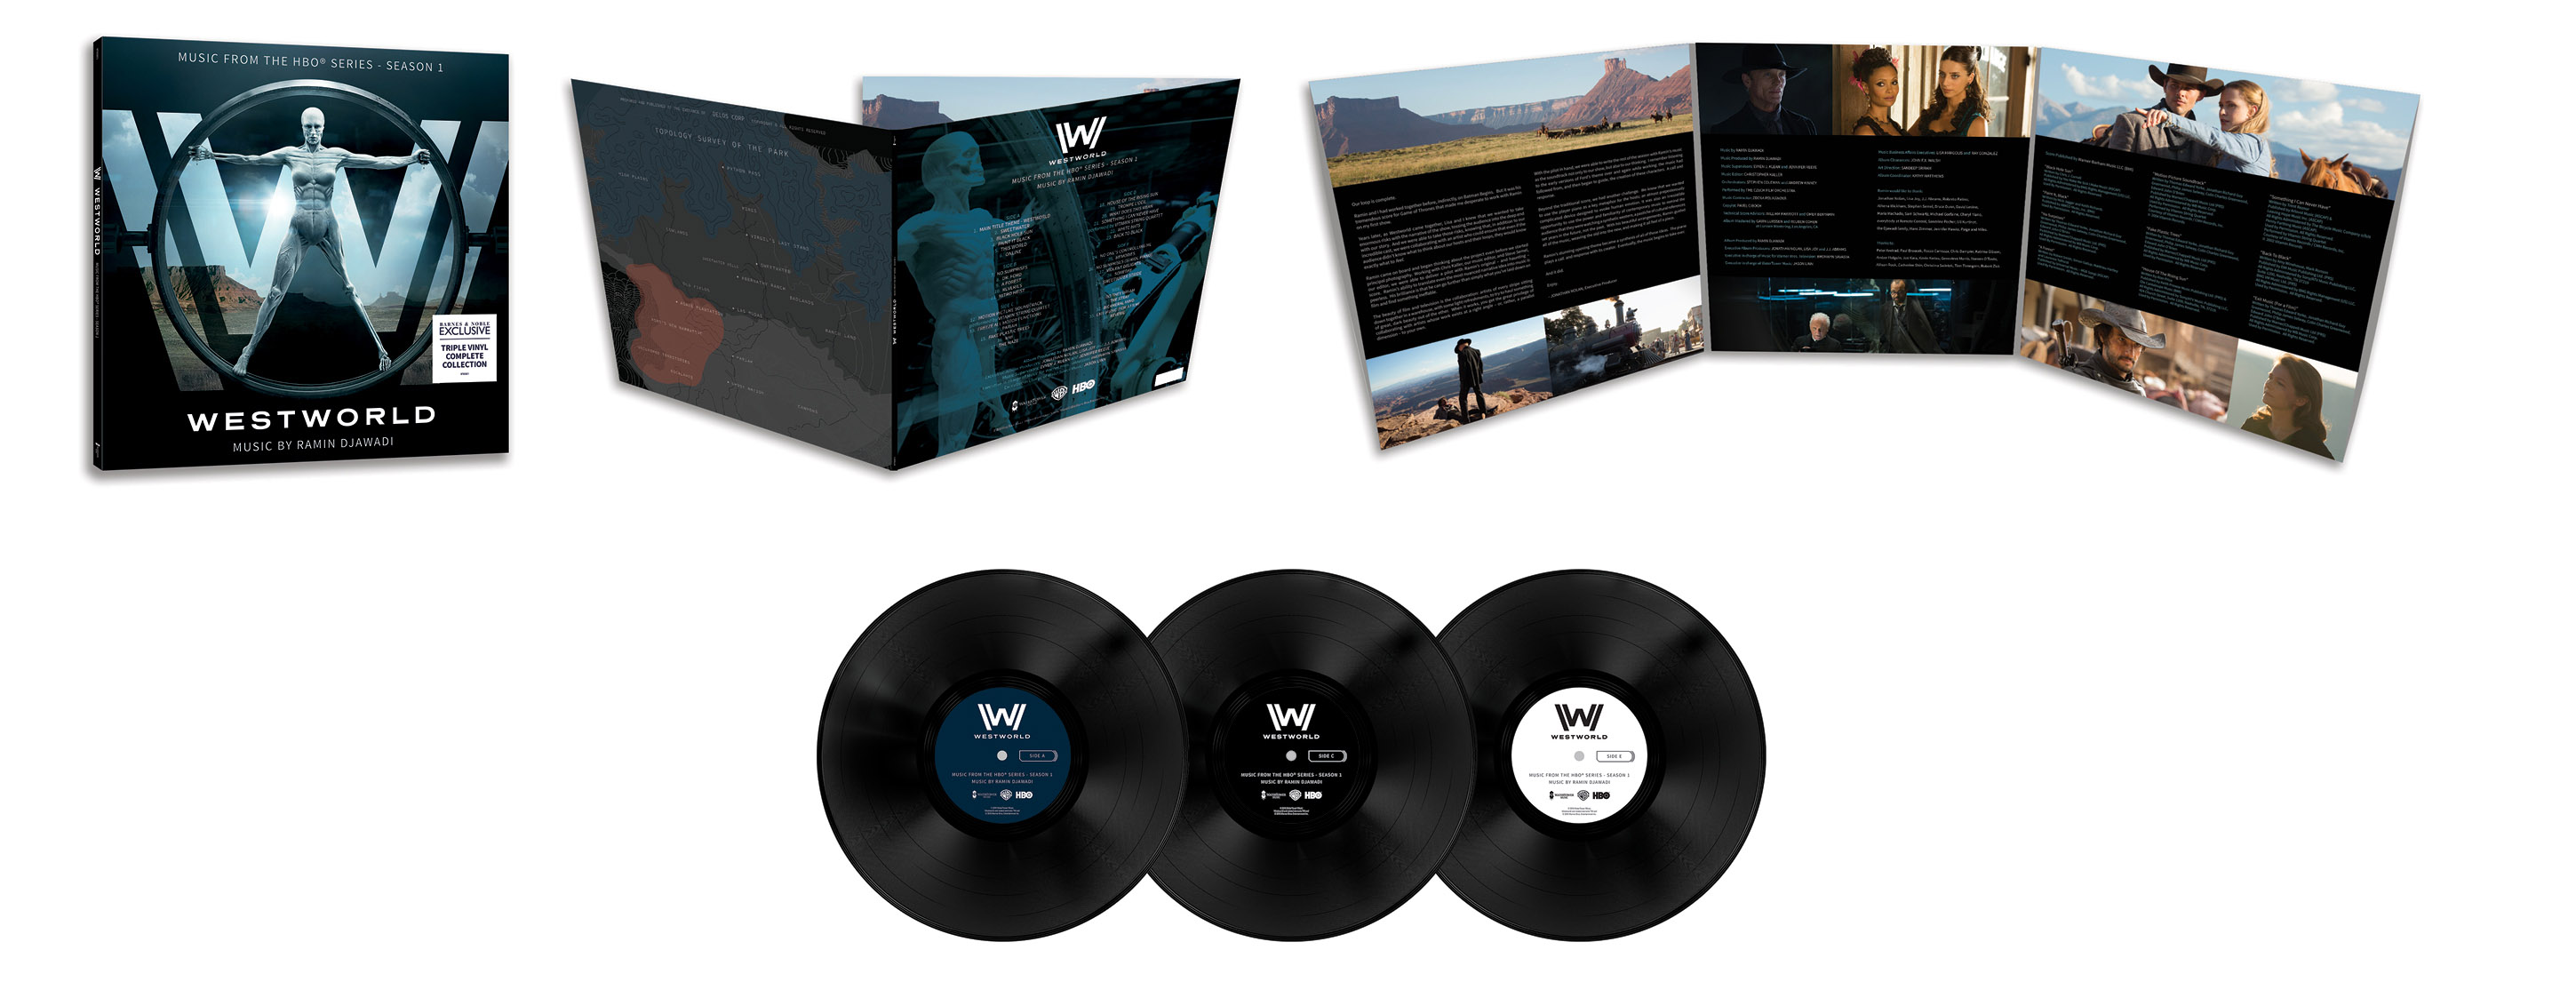 Westworld Soundtrack Now Available On Cd Now Available On